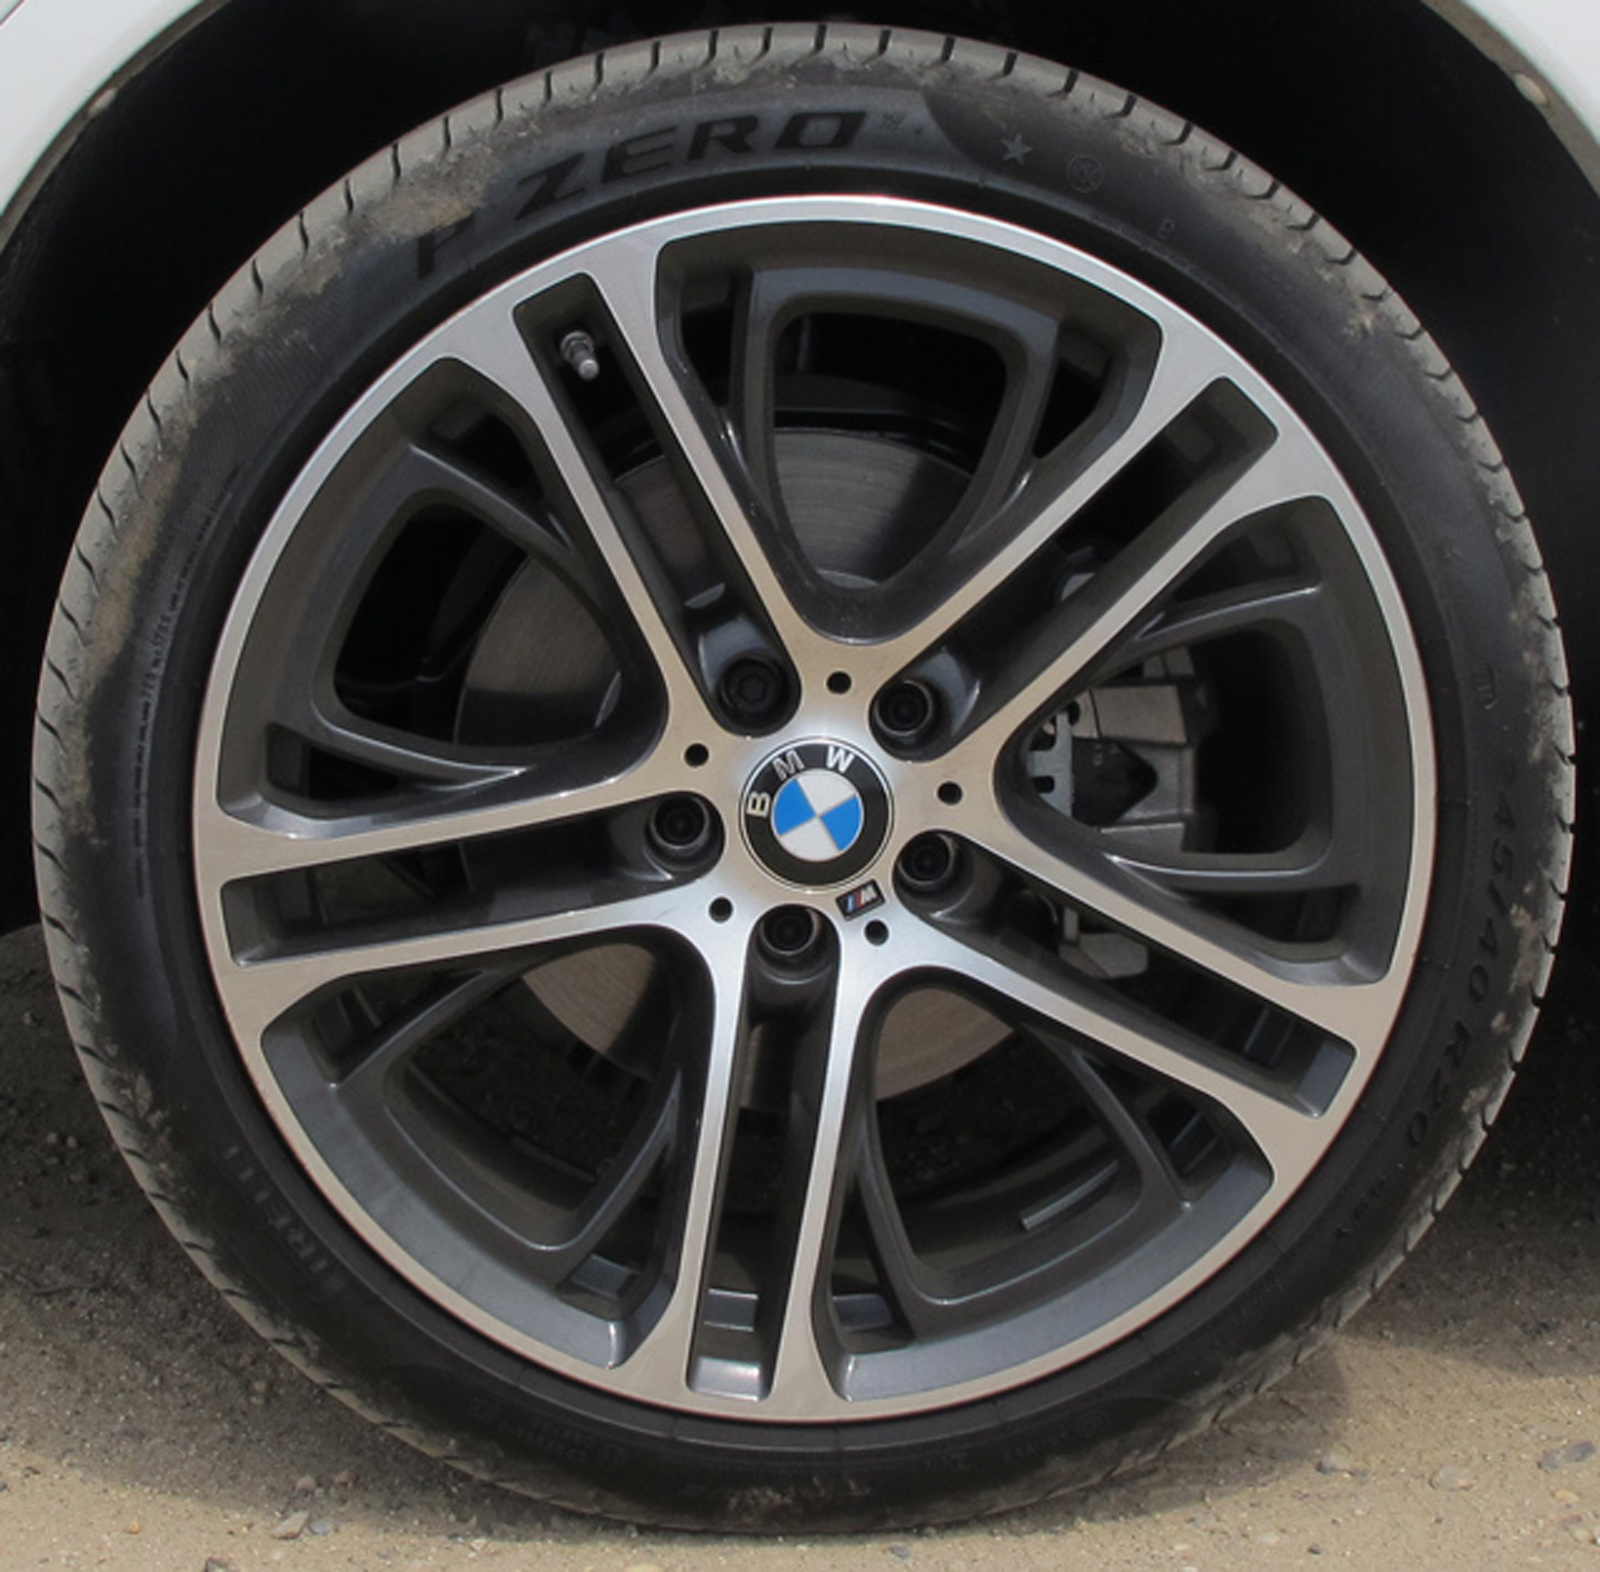 BMW X3 Snow Issues